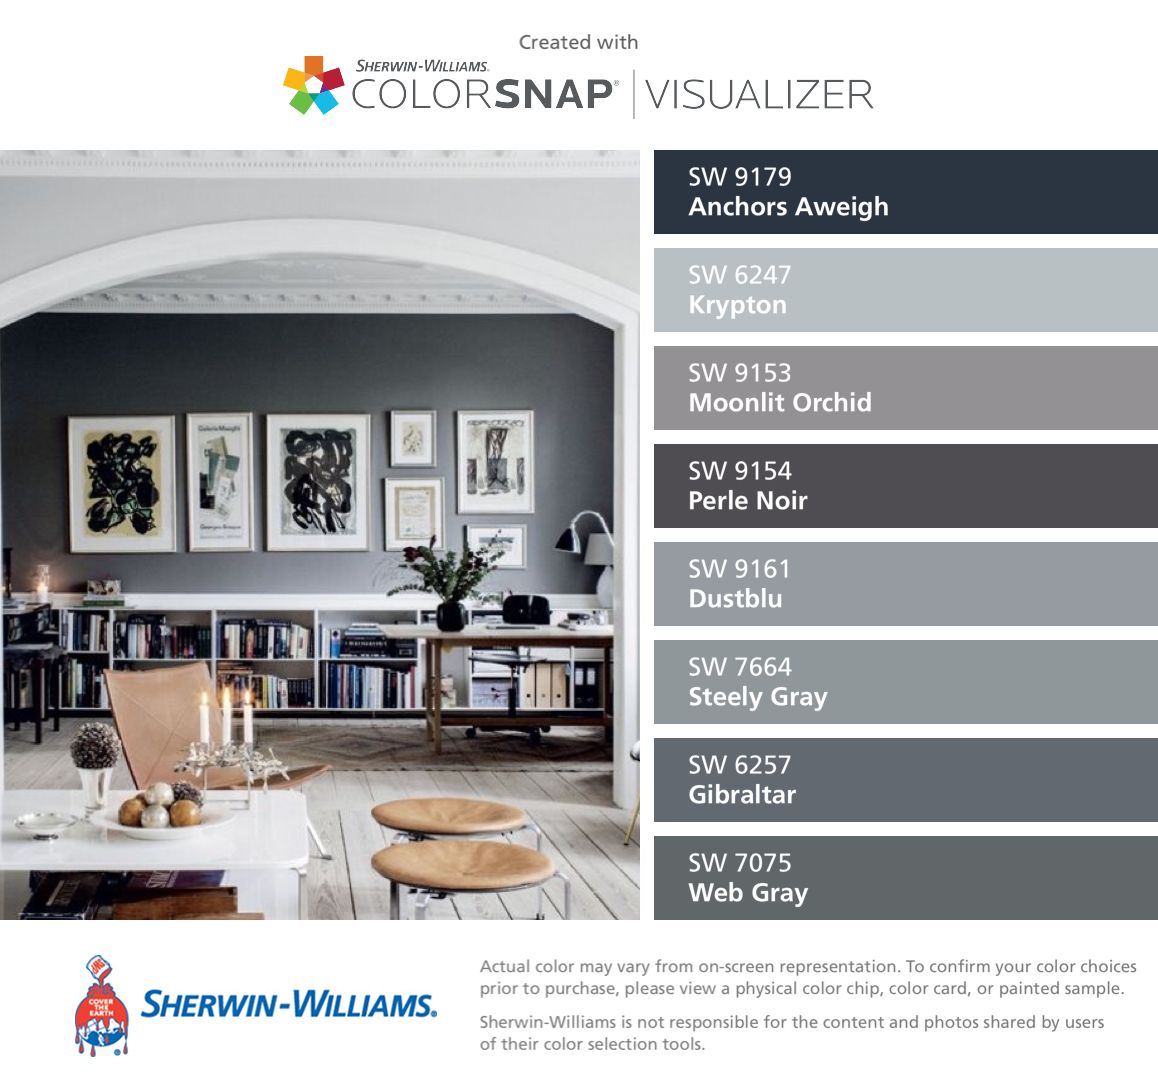 Sherwin williams paint colors sherwin williams 6249 storm cloud - I Found These Colors With Colorsnap Visualizer For Iphone By Sherwin Williams Anchors